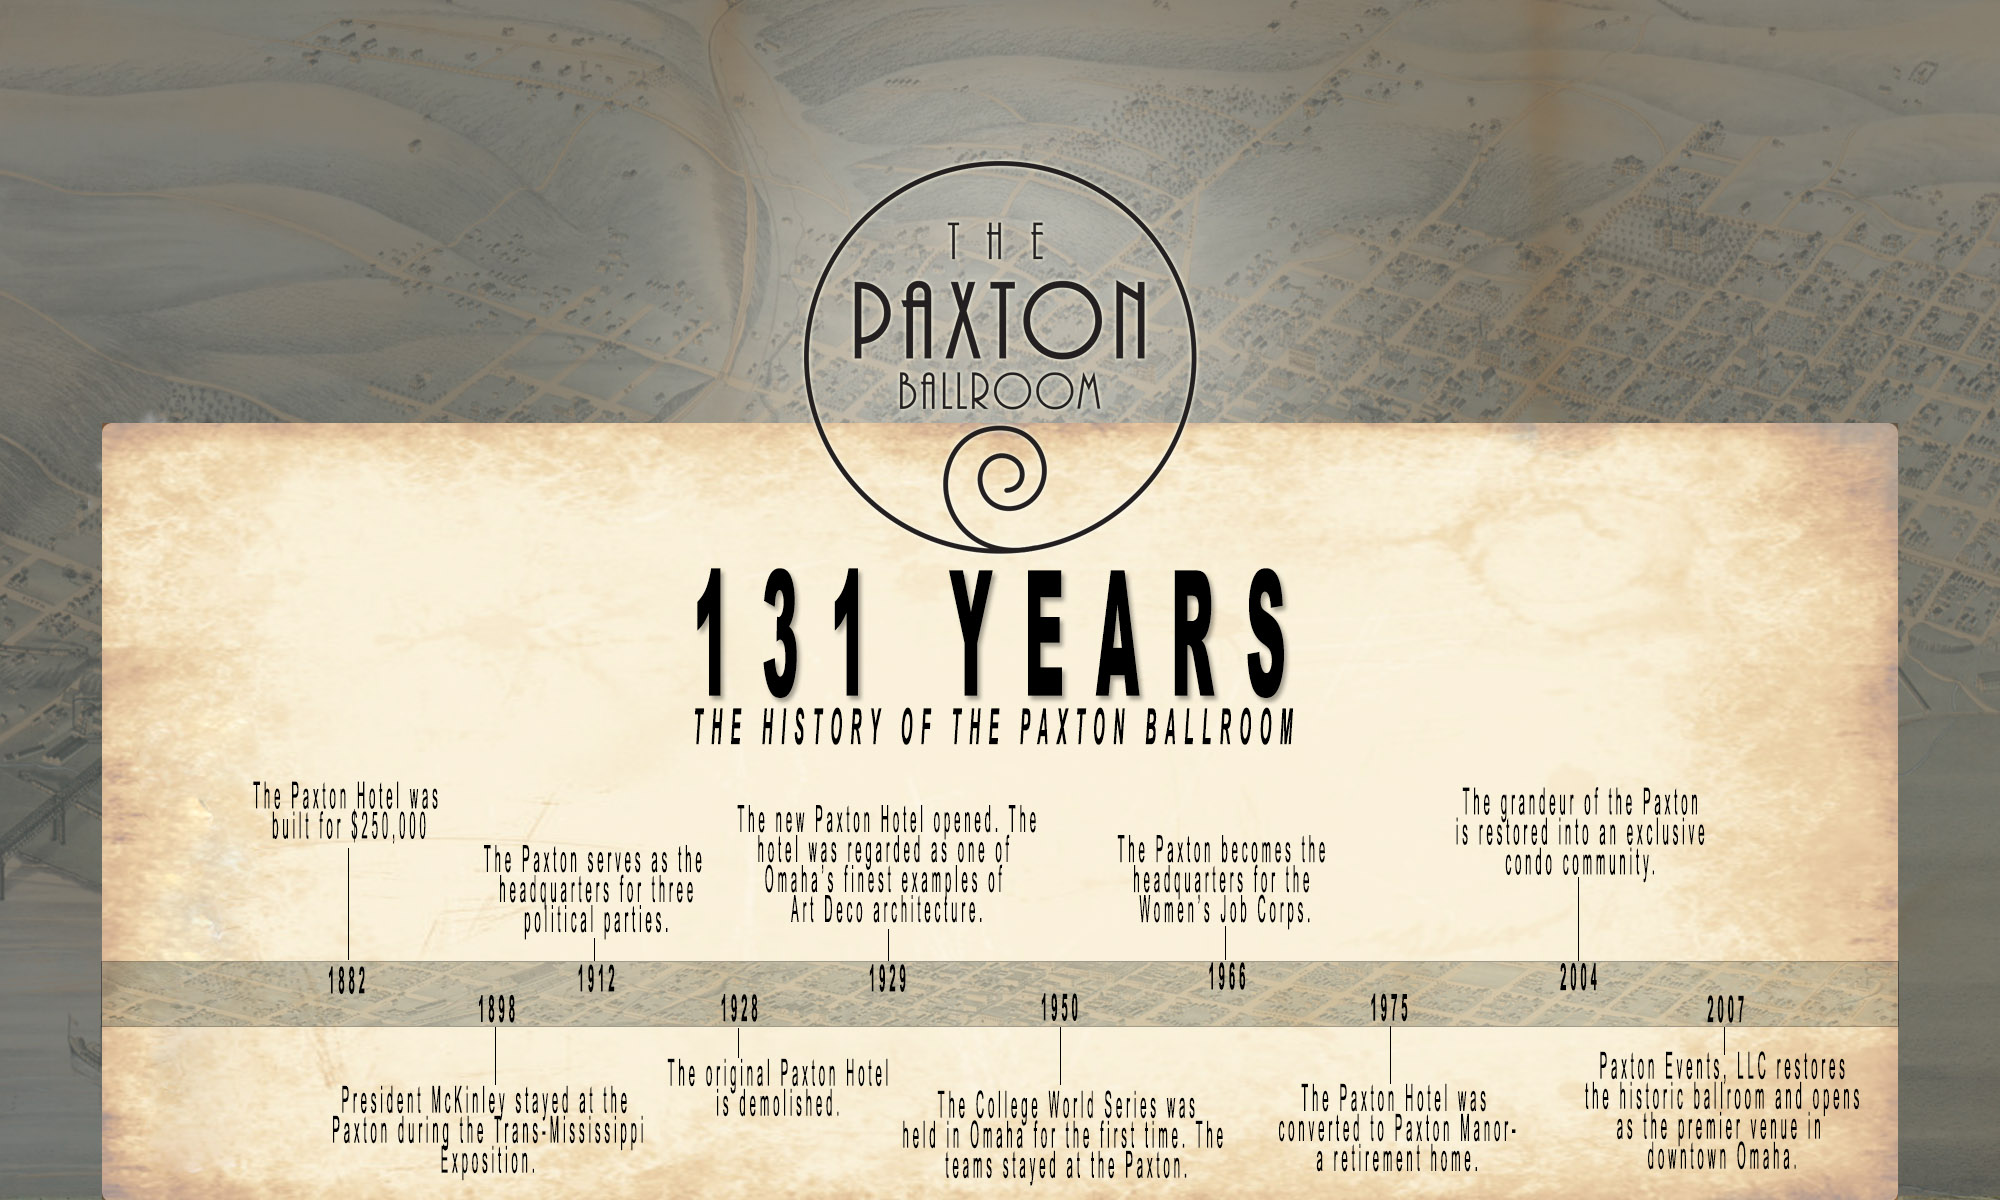 history of the paxton ballroom